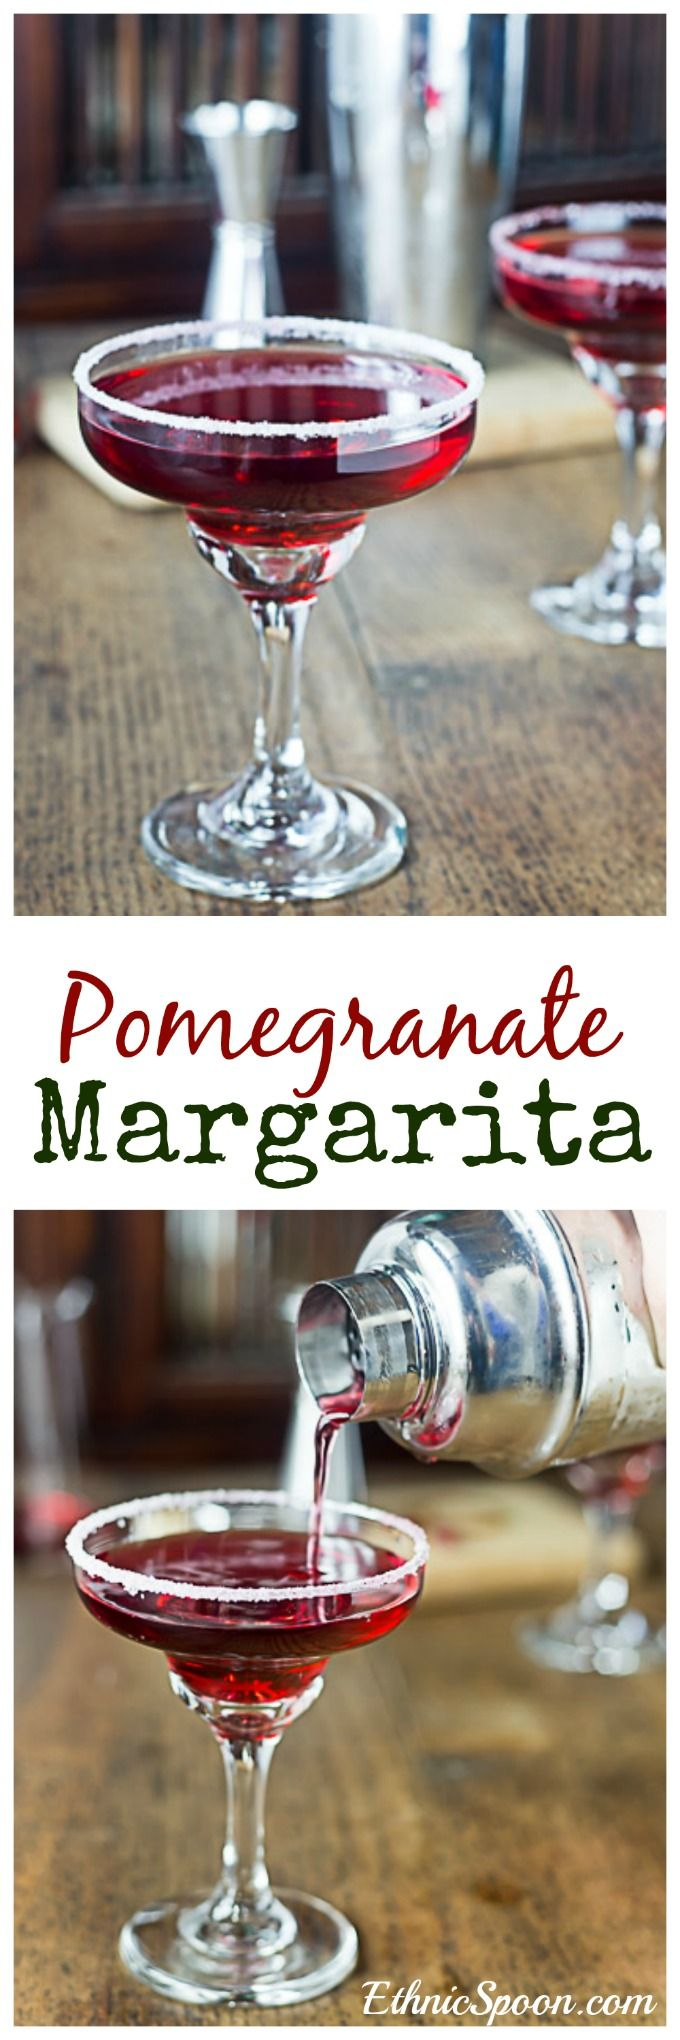 Shake up a pomegranate margarita! Sweet, tangy, light and refreshing pomegranate margarita with a sugar rimmed glass adds a nice contrast of flavors. | ethnicspoon.com